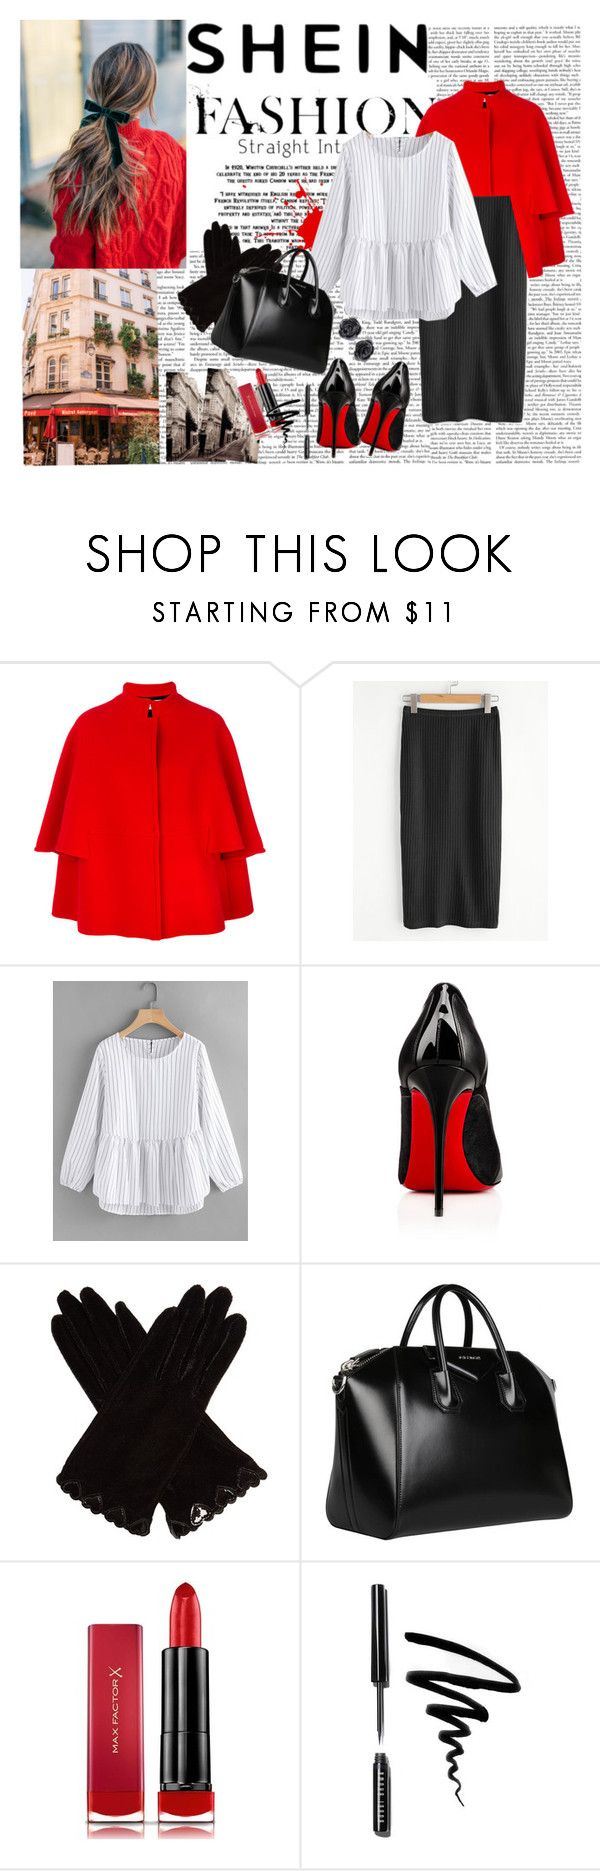 """""""405. SHEIN"""" by valdete ❤ liked on Polyvore featuring Gianluca Capannolo, Christian Louboutin, AGNELLE, Givenchy, Max Factor and Bobbi Brown Cosmetics"""